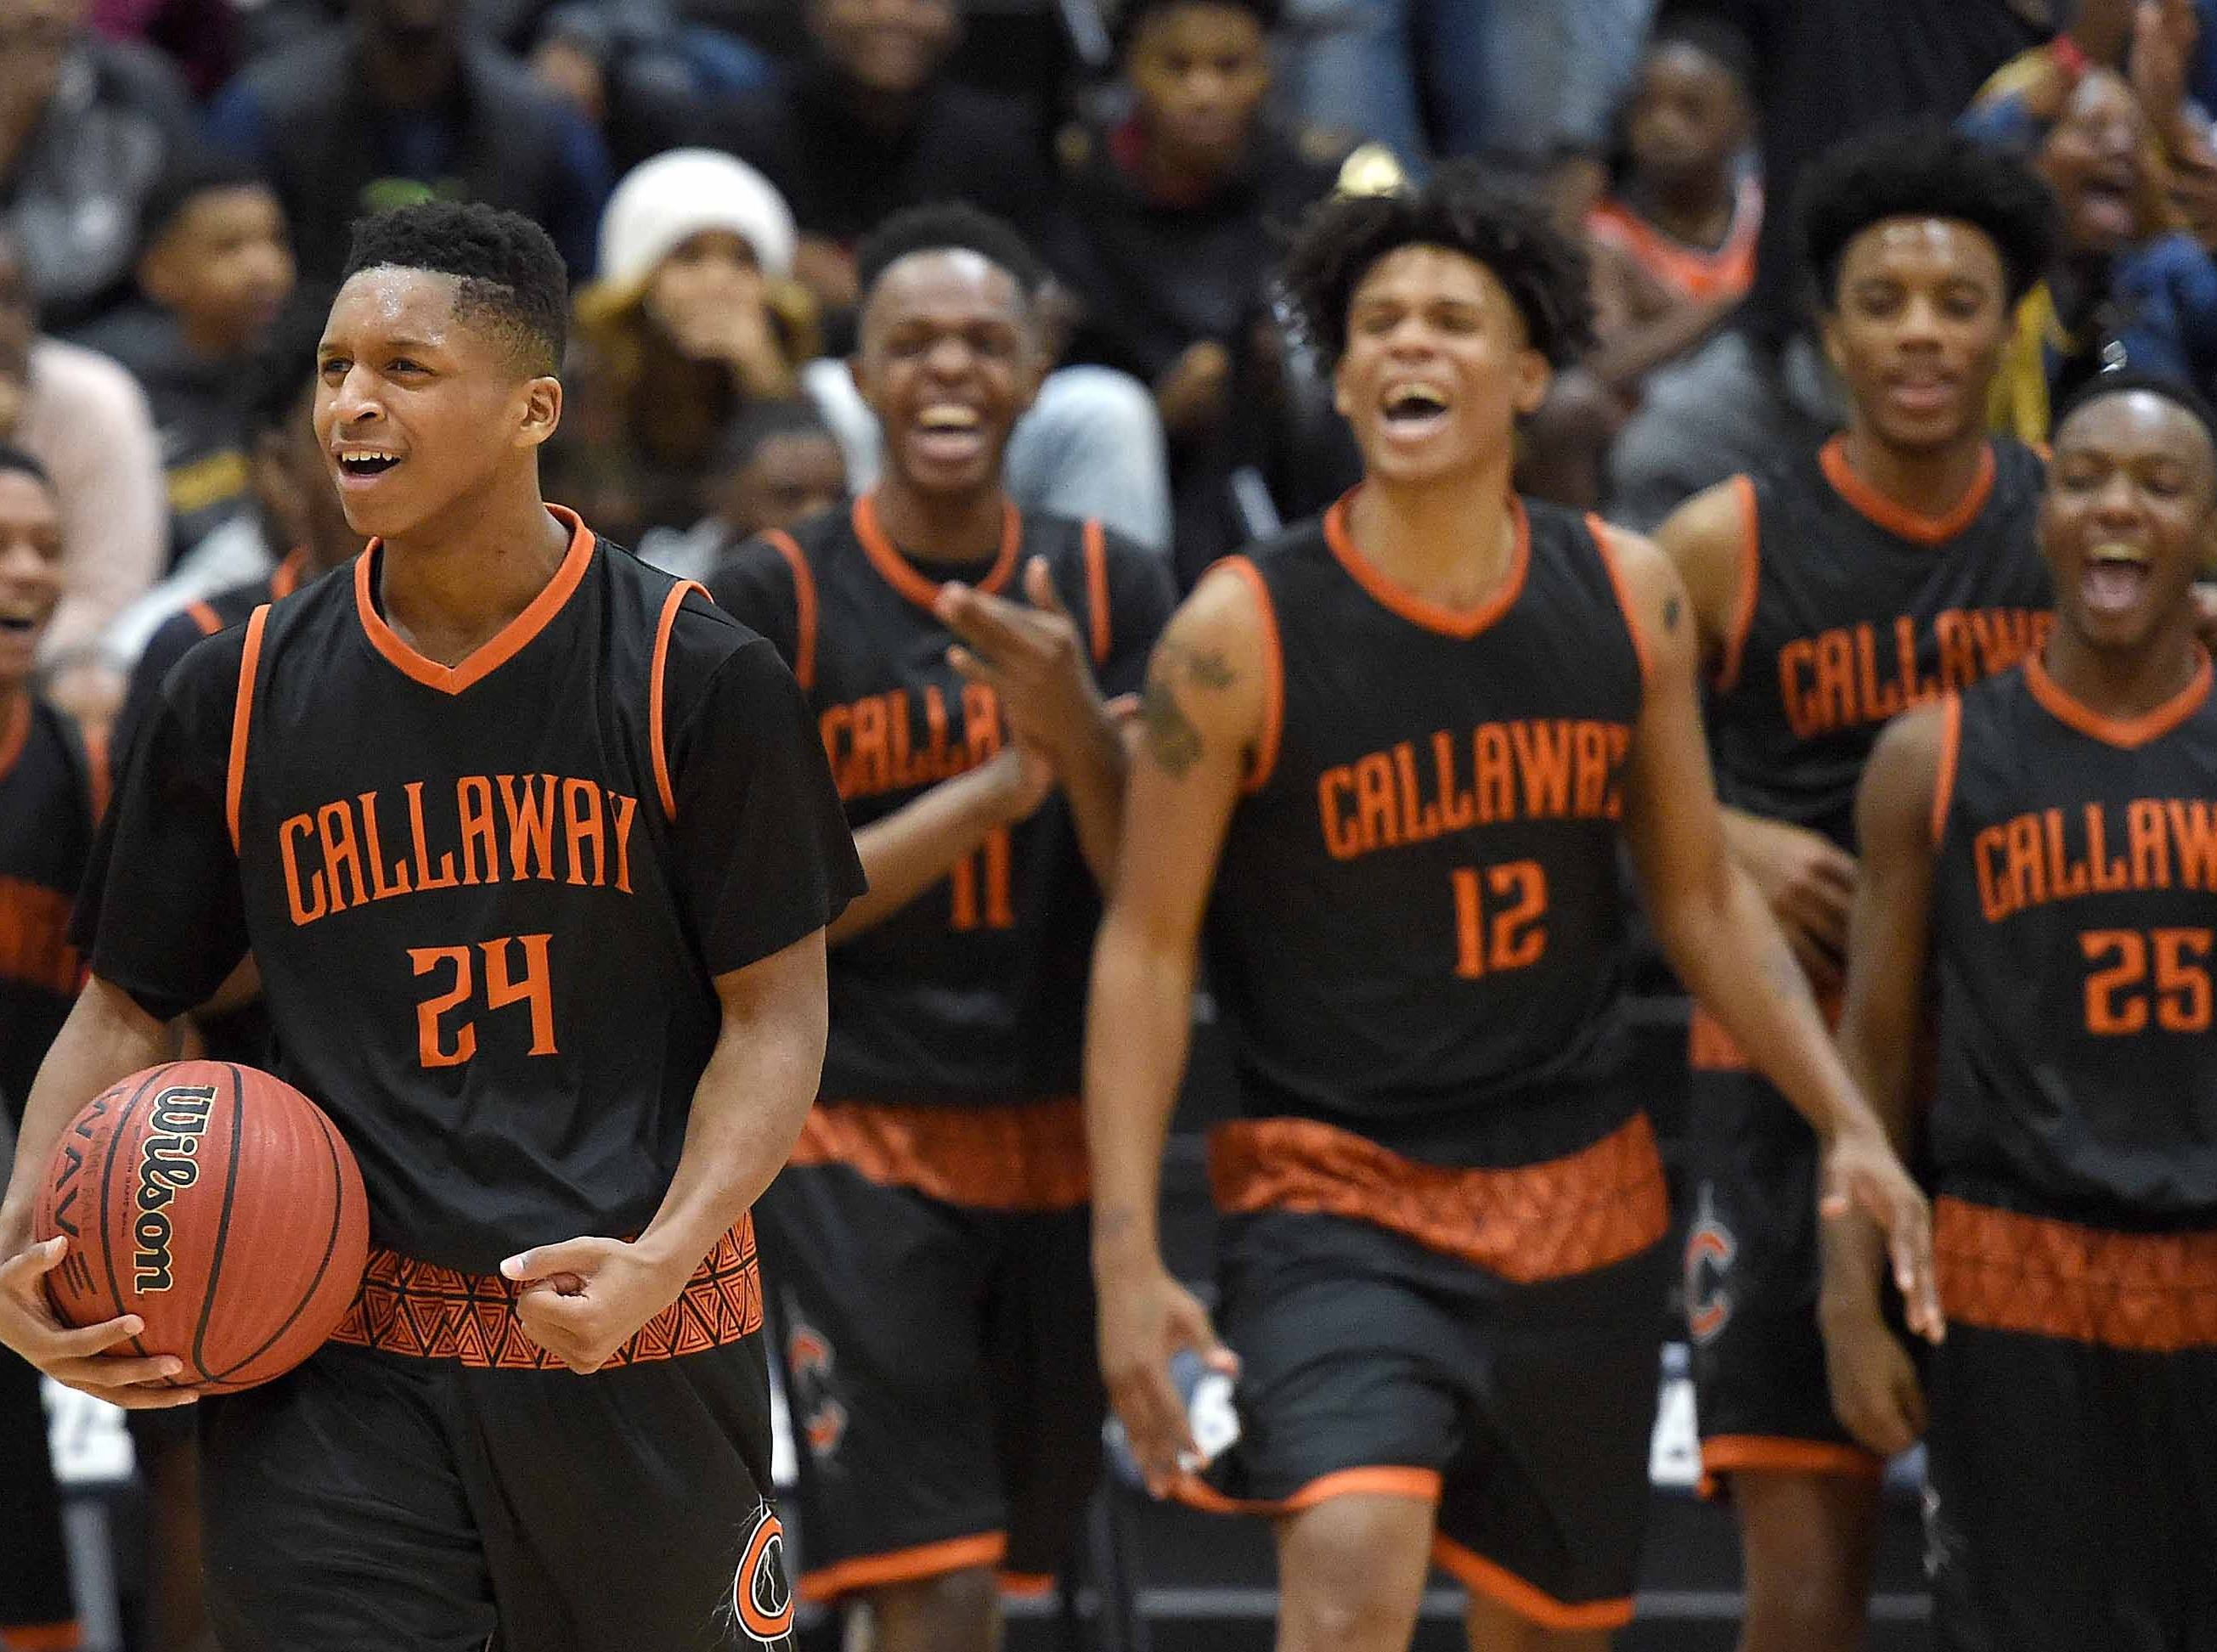 The Callaway Chargers celebrate their overtime win against Raymond on Monday, January 21, 2019, at the Rumble in the South high school basketball tournament at St. Andrew's Episcopal School in Ridgeland, Miss.